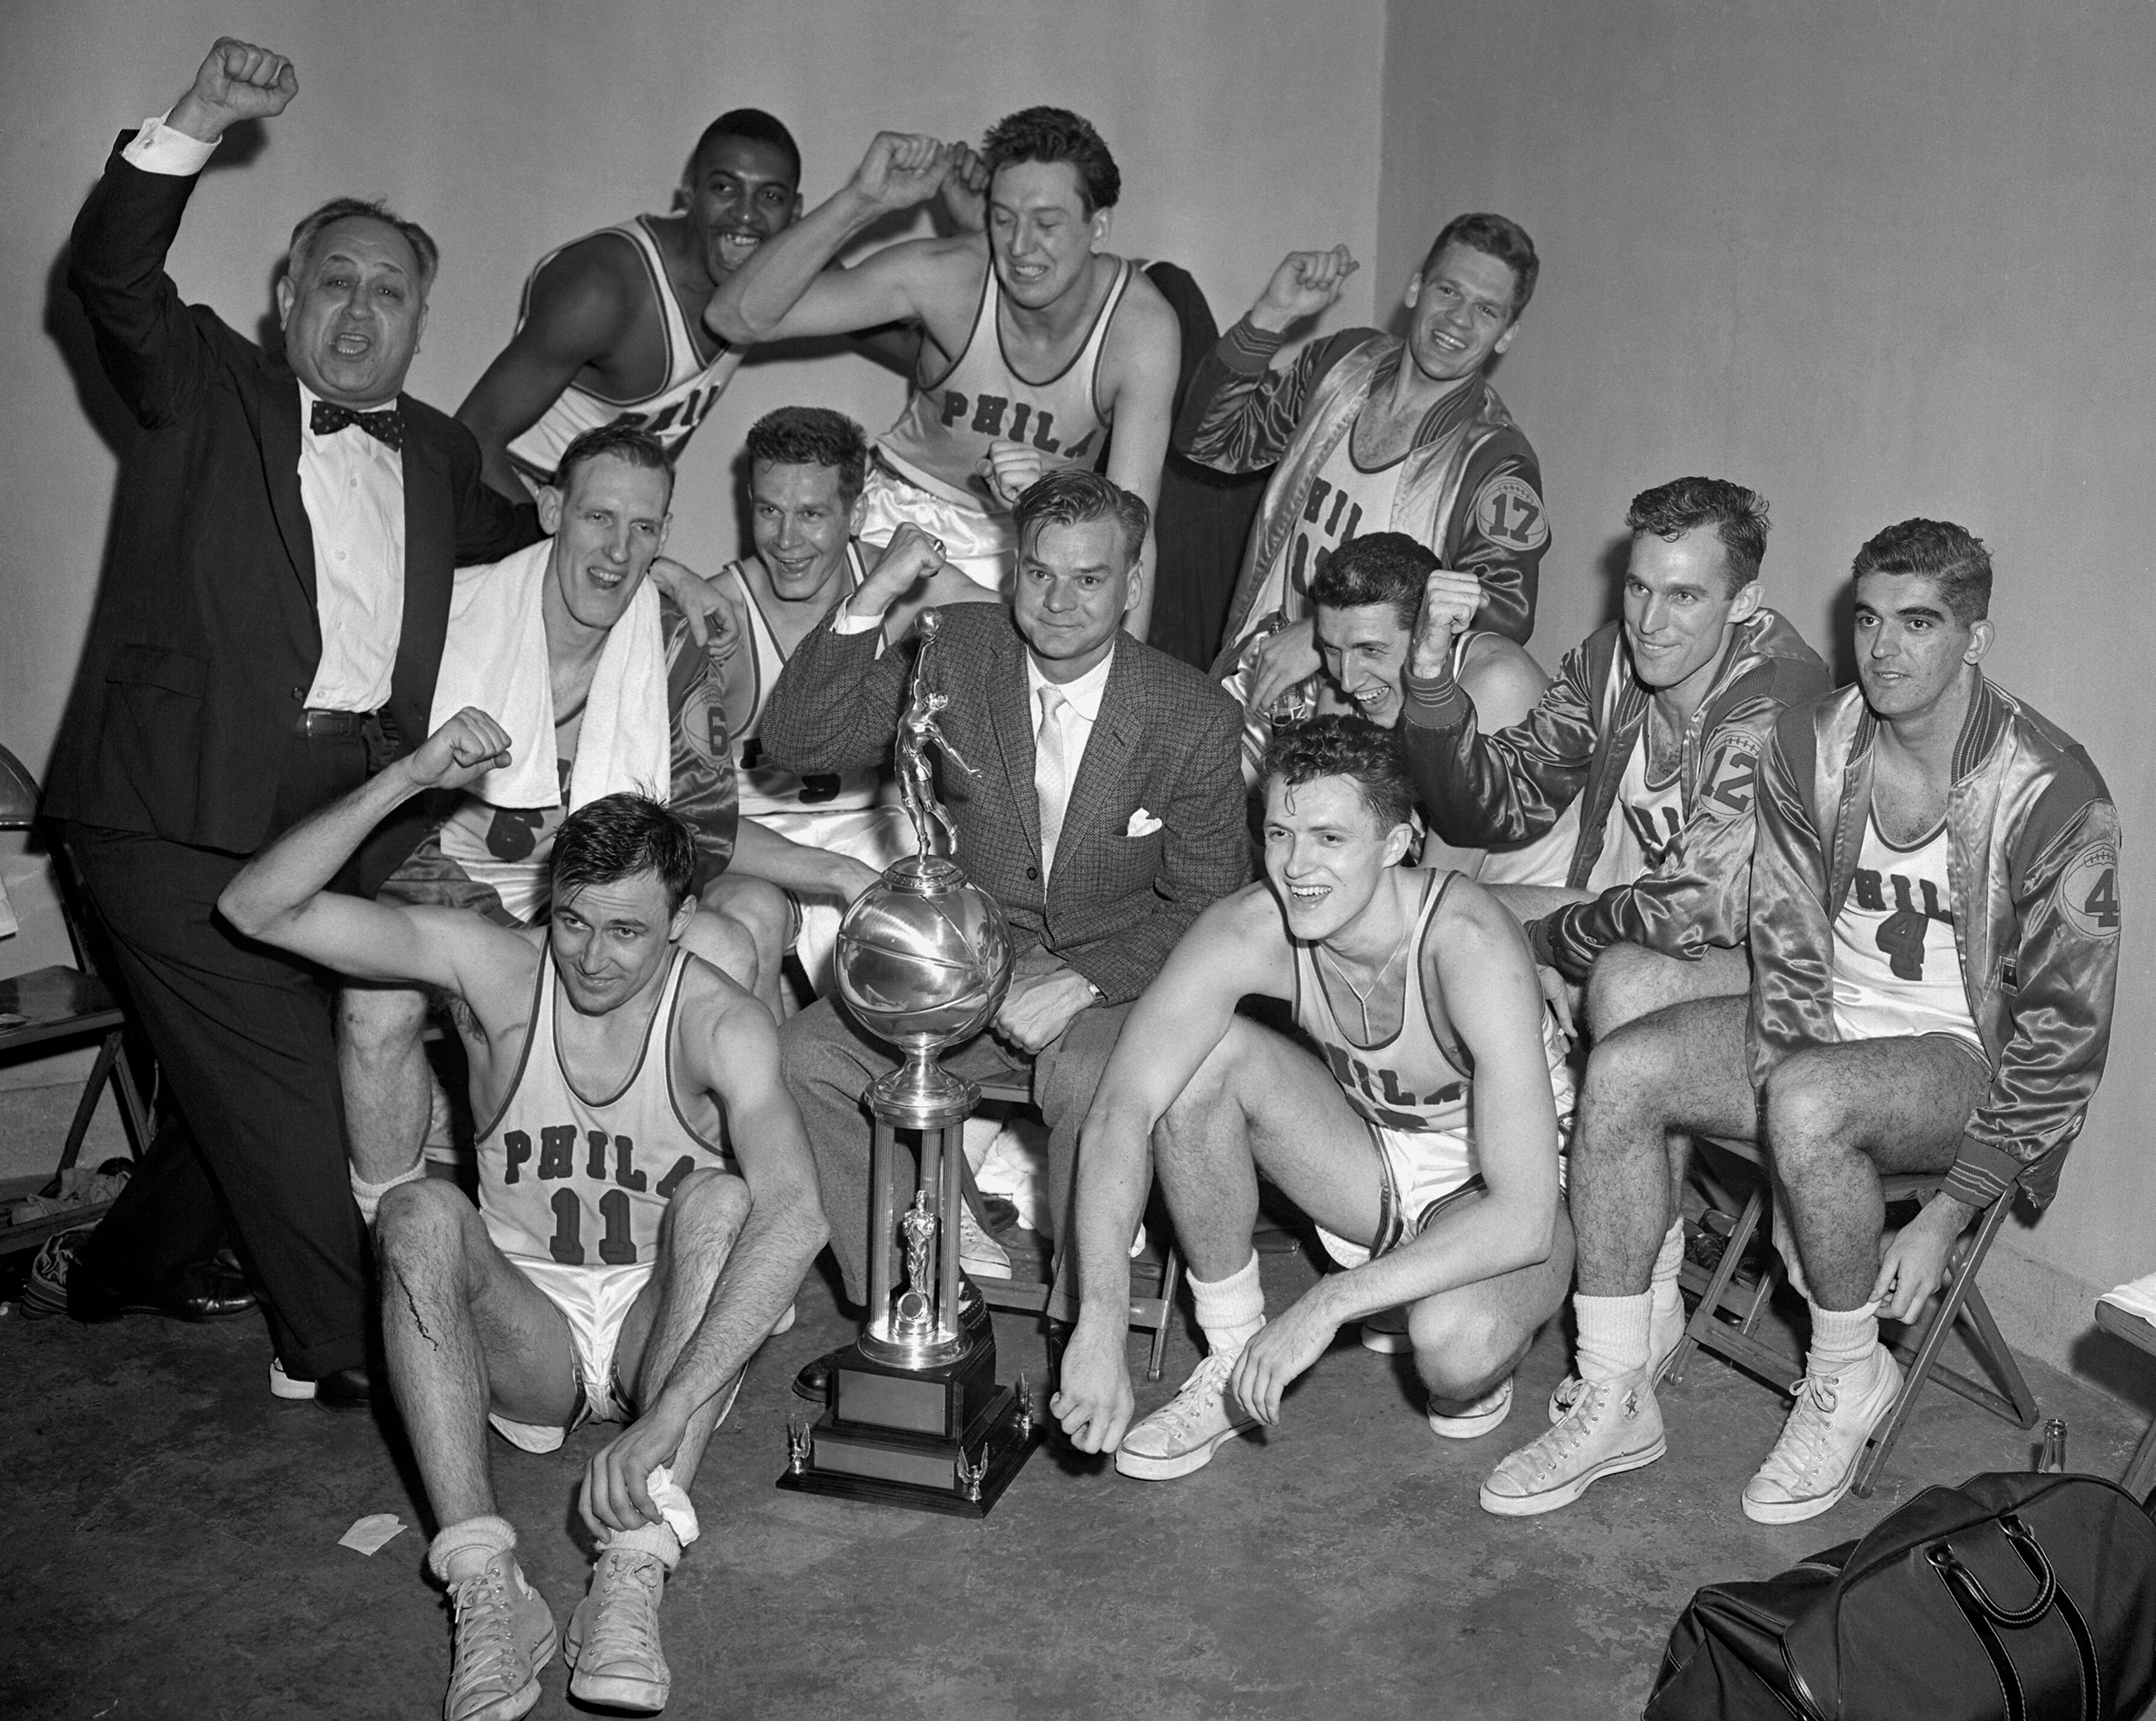 Philadelphia Warriors against the Fort Wayne Pistons during Game Five of the NBA Finals on April 7, 1956 at the Philadelphia Civic Center in Philadelphia. The Philadelphia Warriors defeated the Fort Wayne Pistons 99-88 and won the series 4-1.